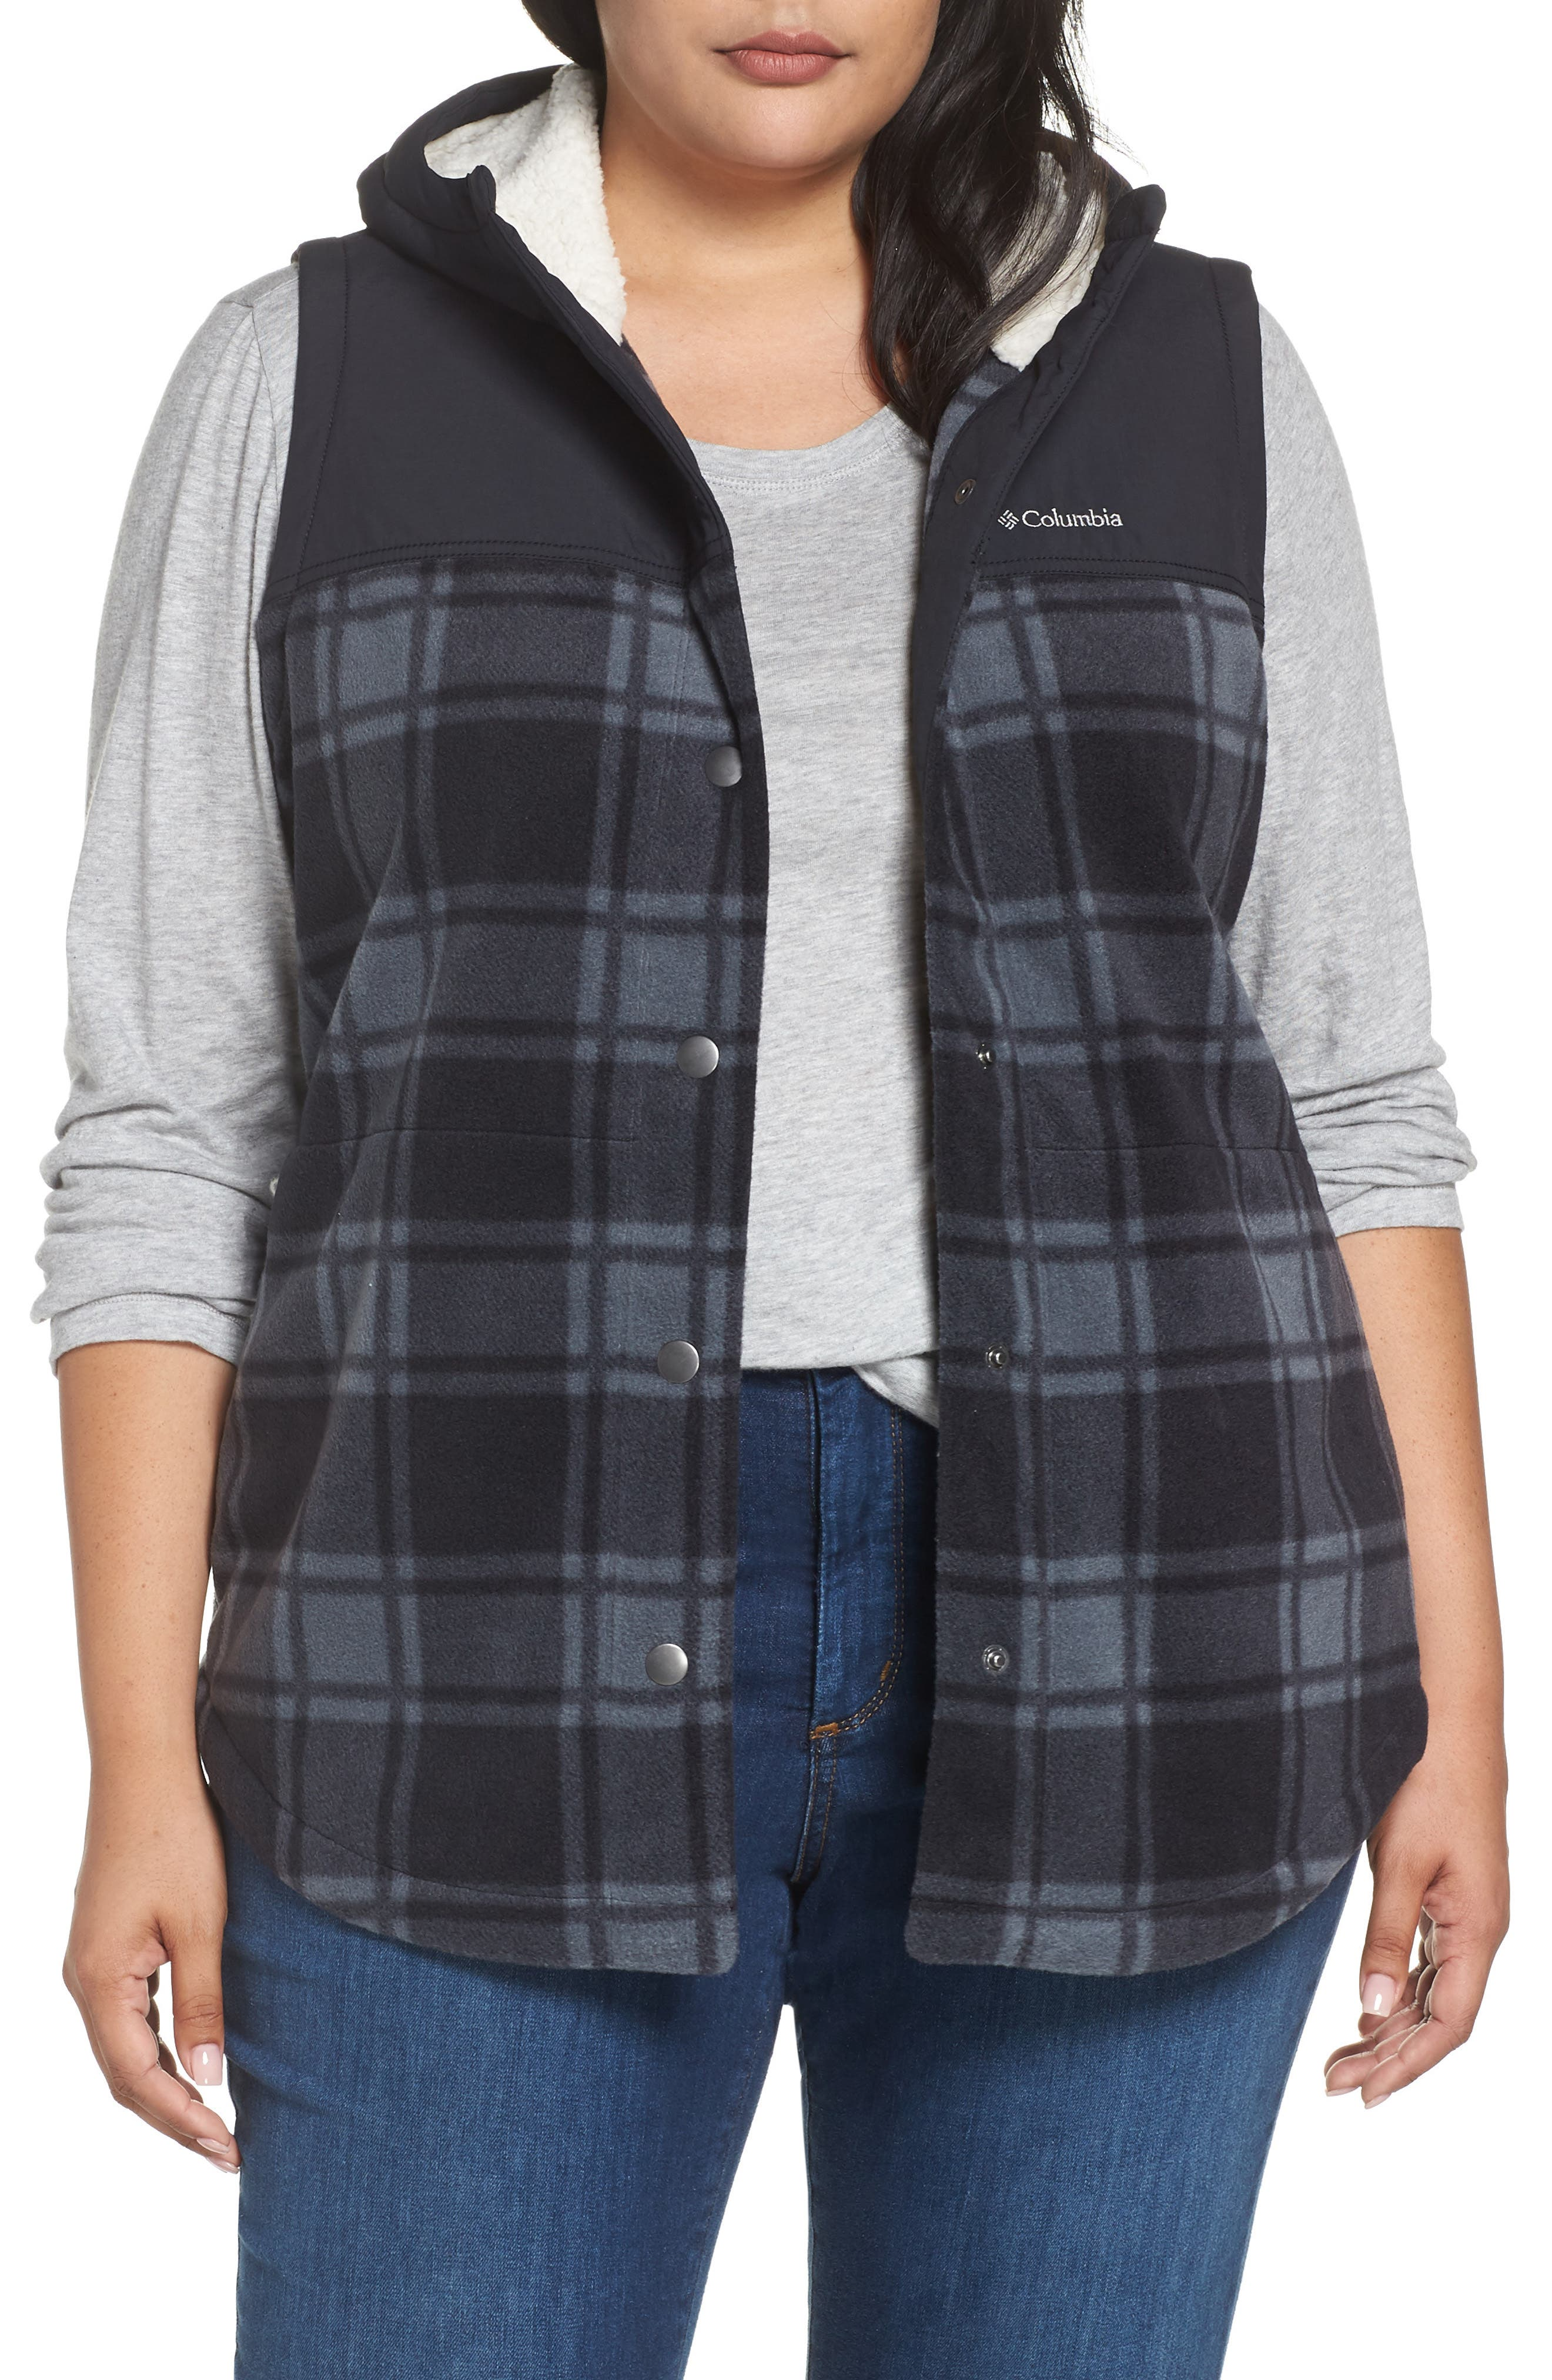 Benton Springs Overlay Vest,                             Main thumbnail 1, color,                             010